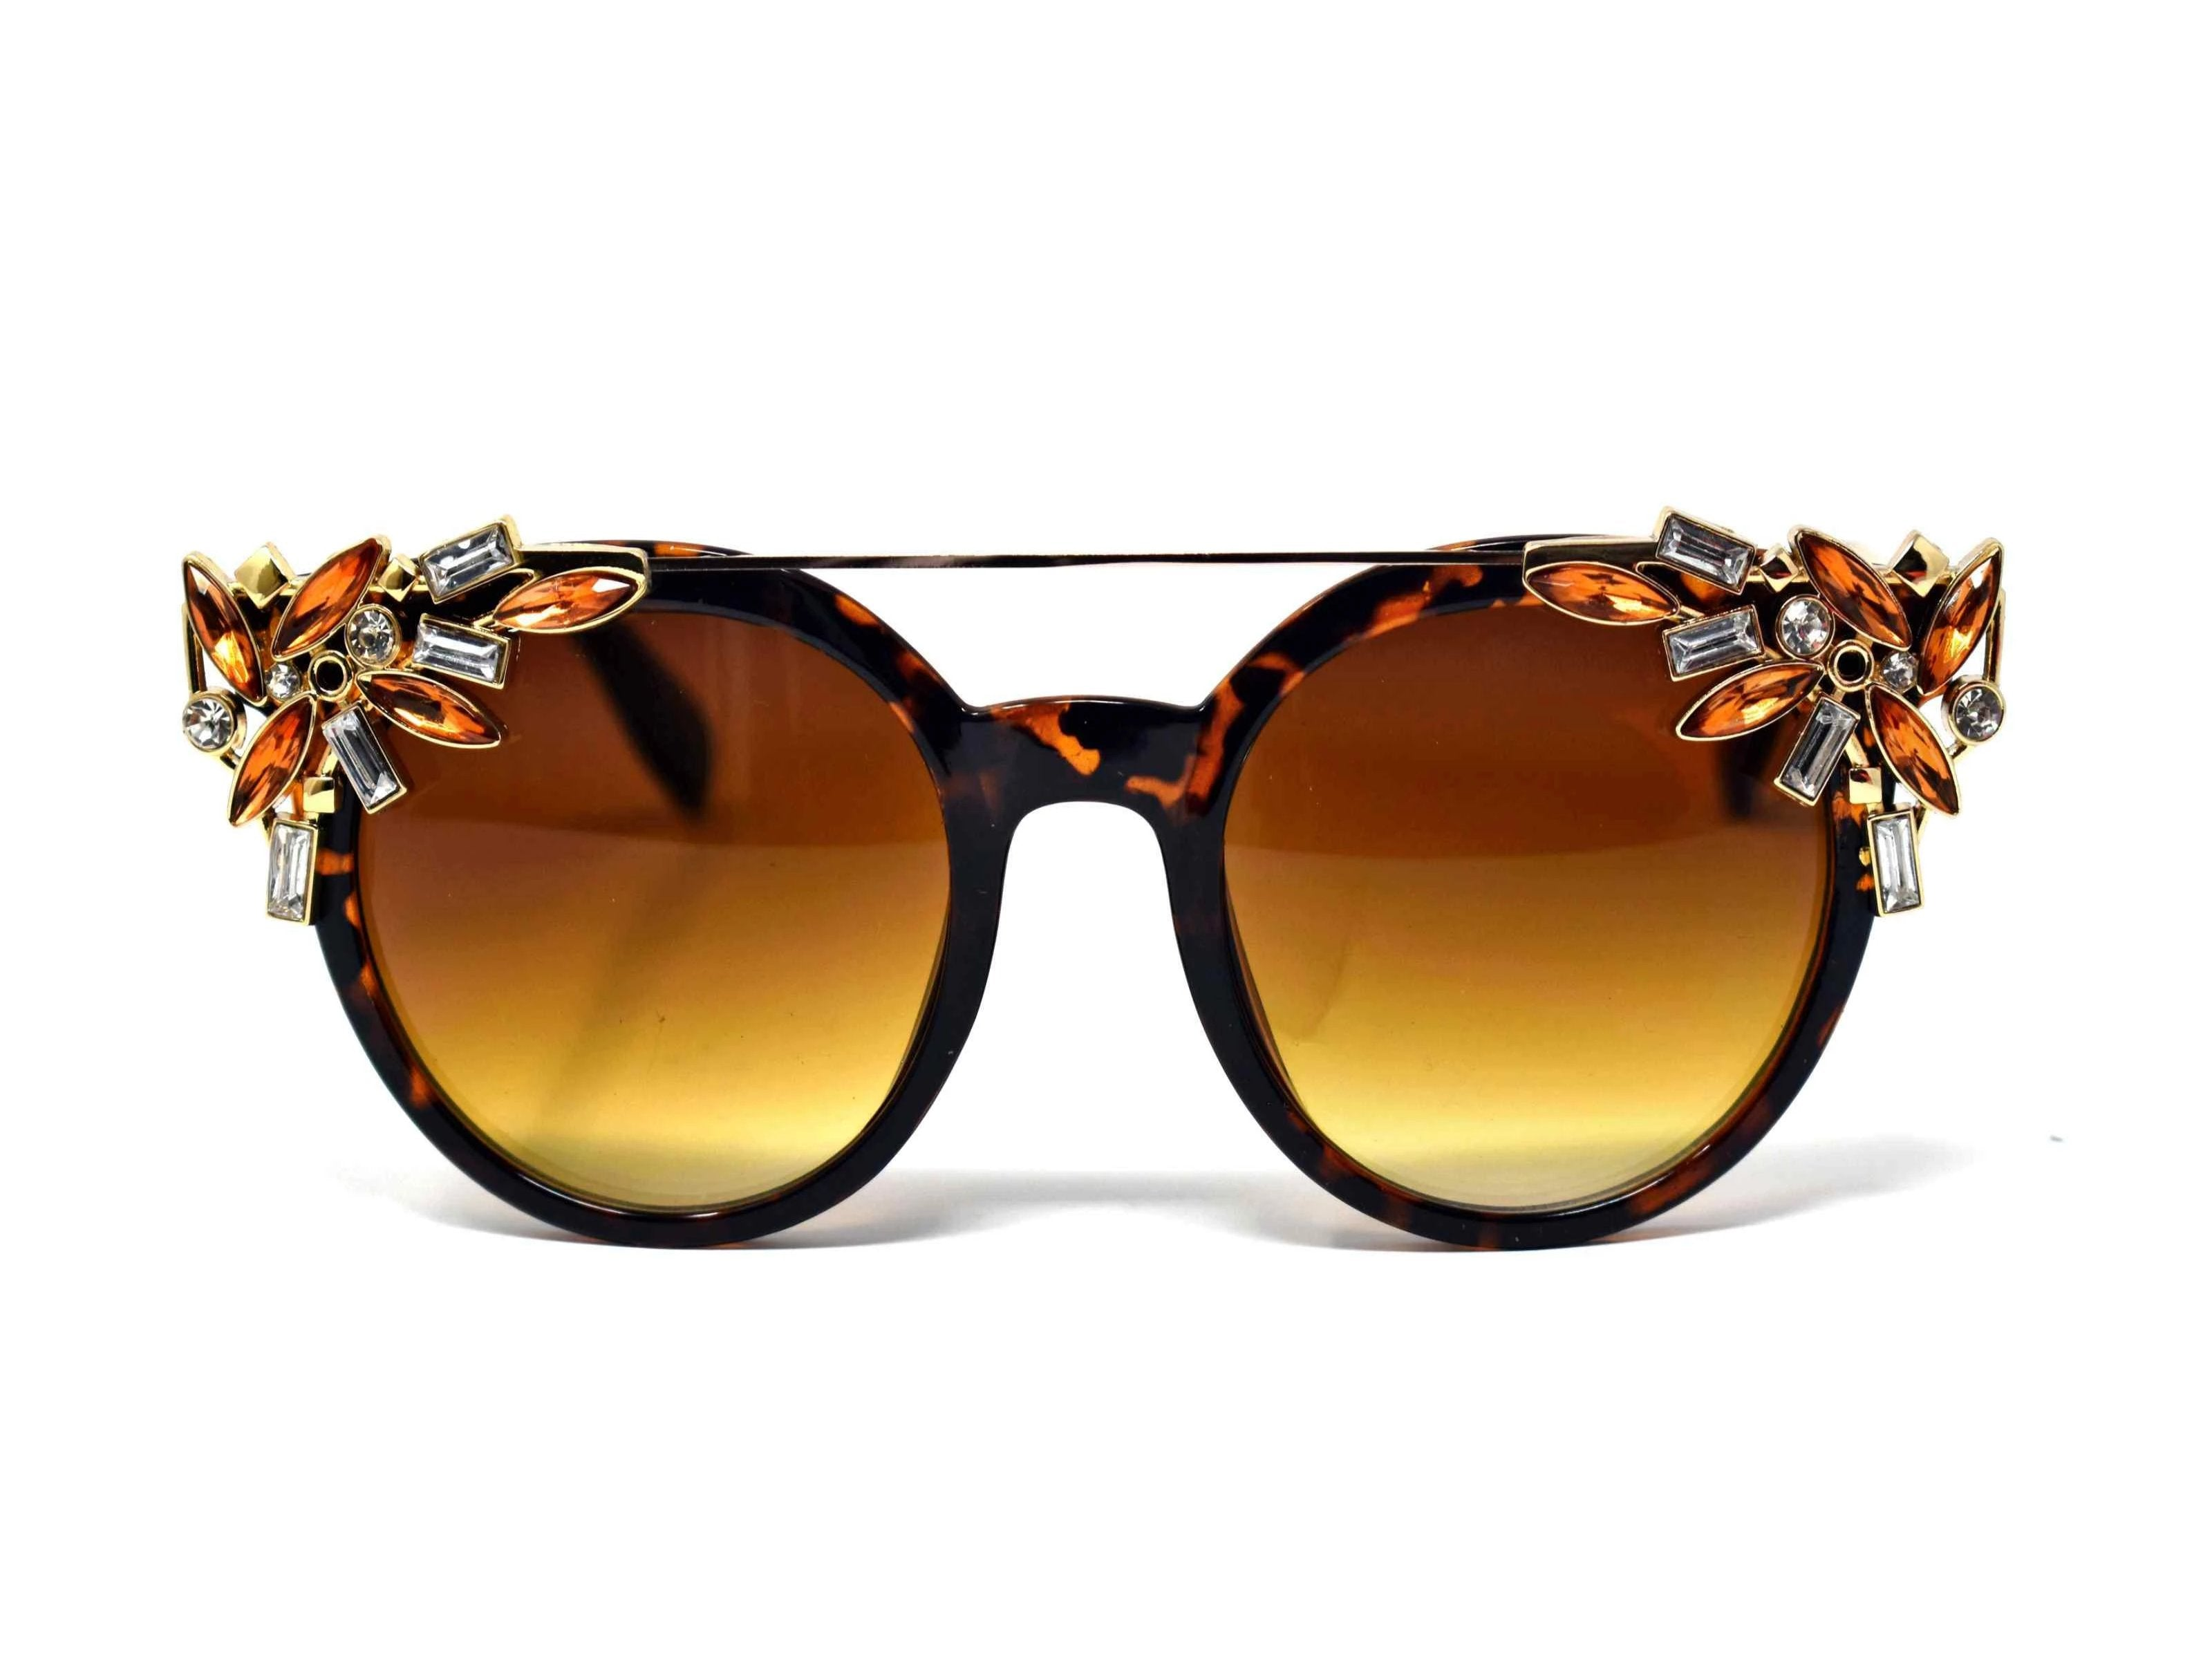 Trend setter and attention getter is what they will call you in these Pansy Leopard sunglasses with a sleek gold trim adorned in clear and brown gems, in a pantos style frame.